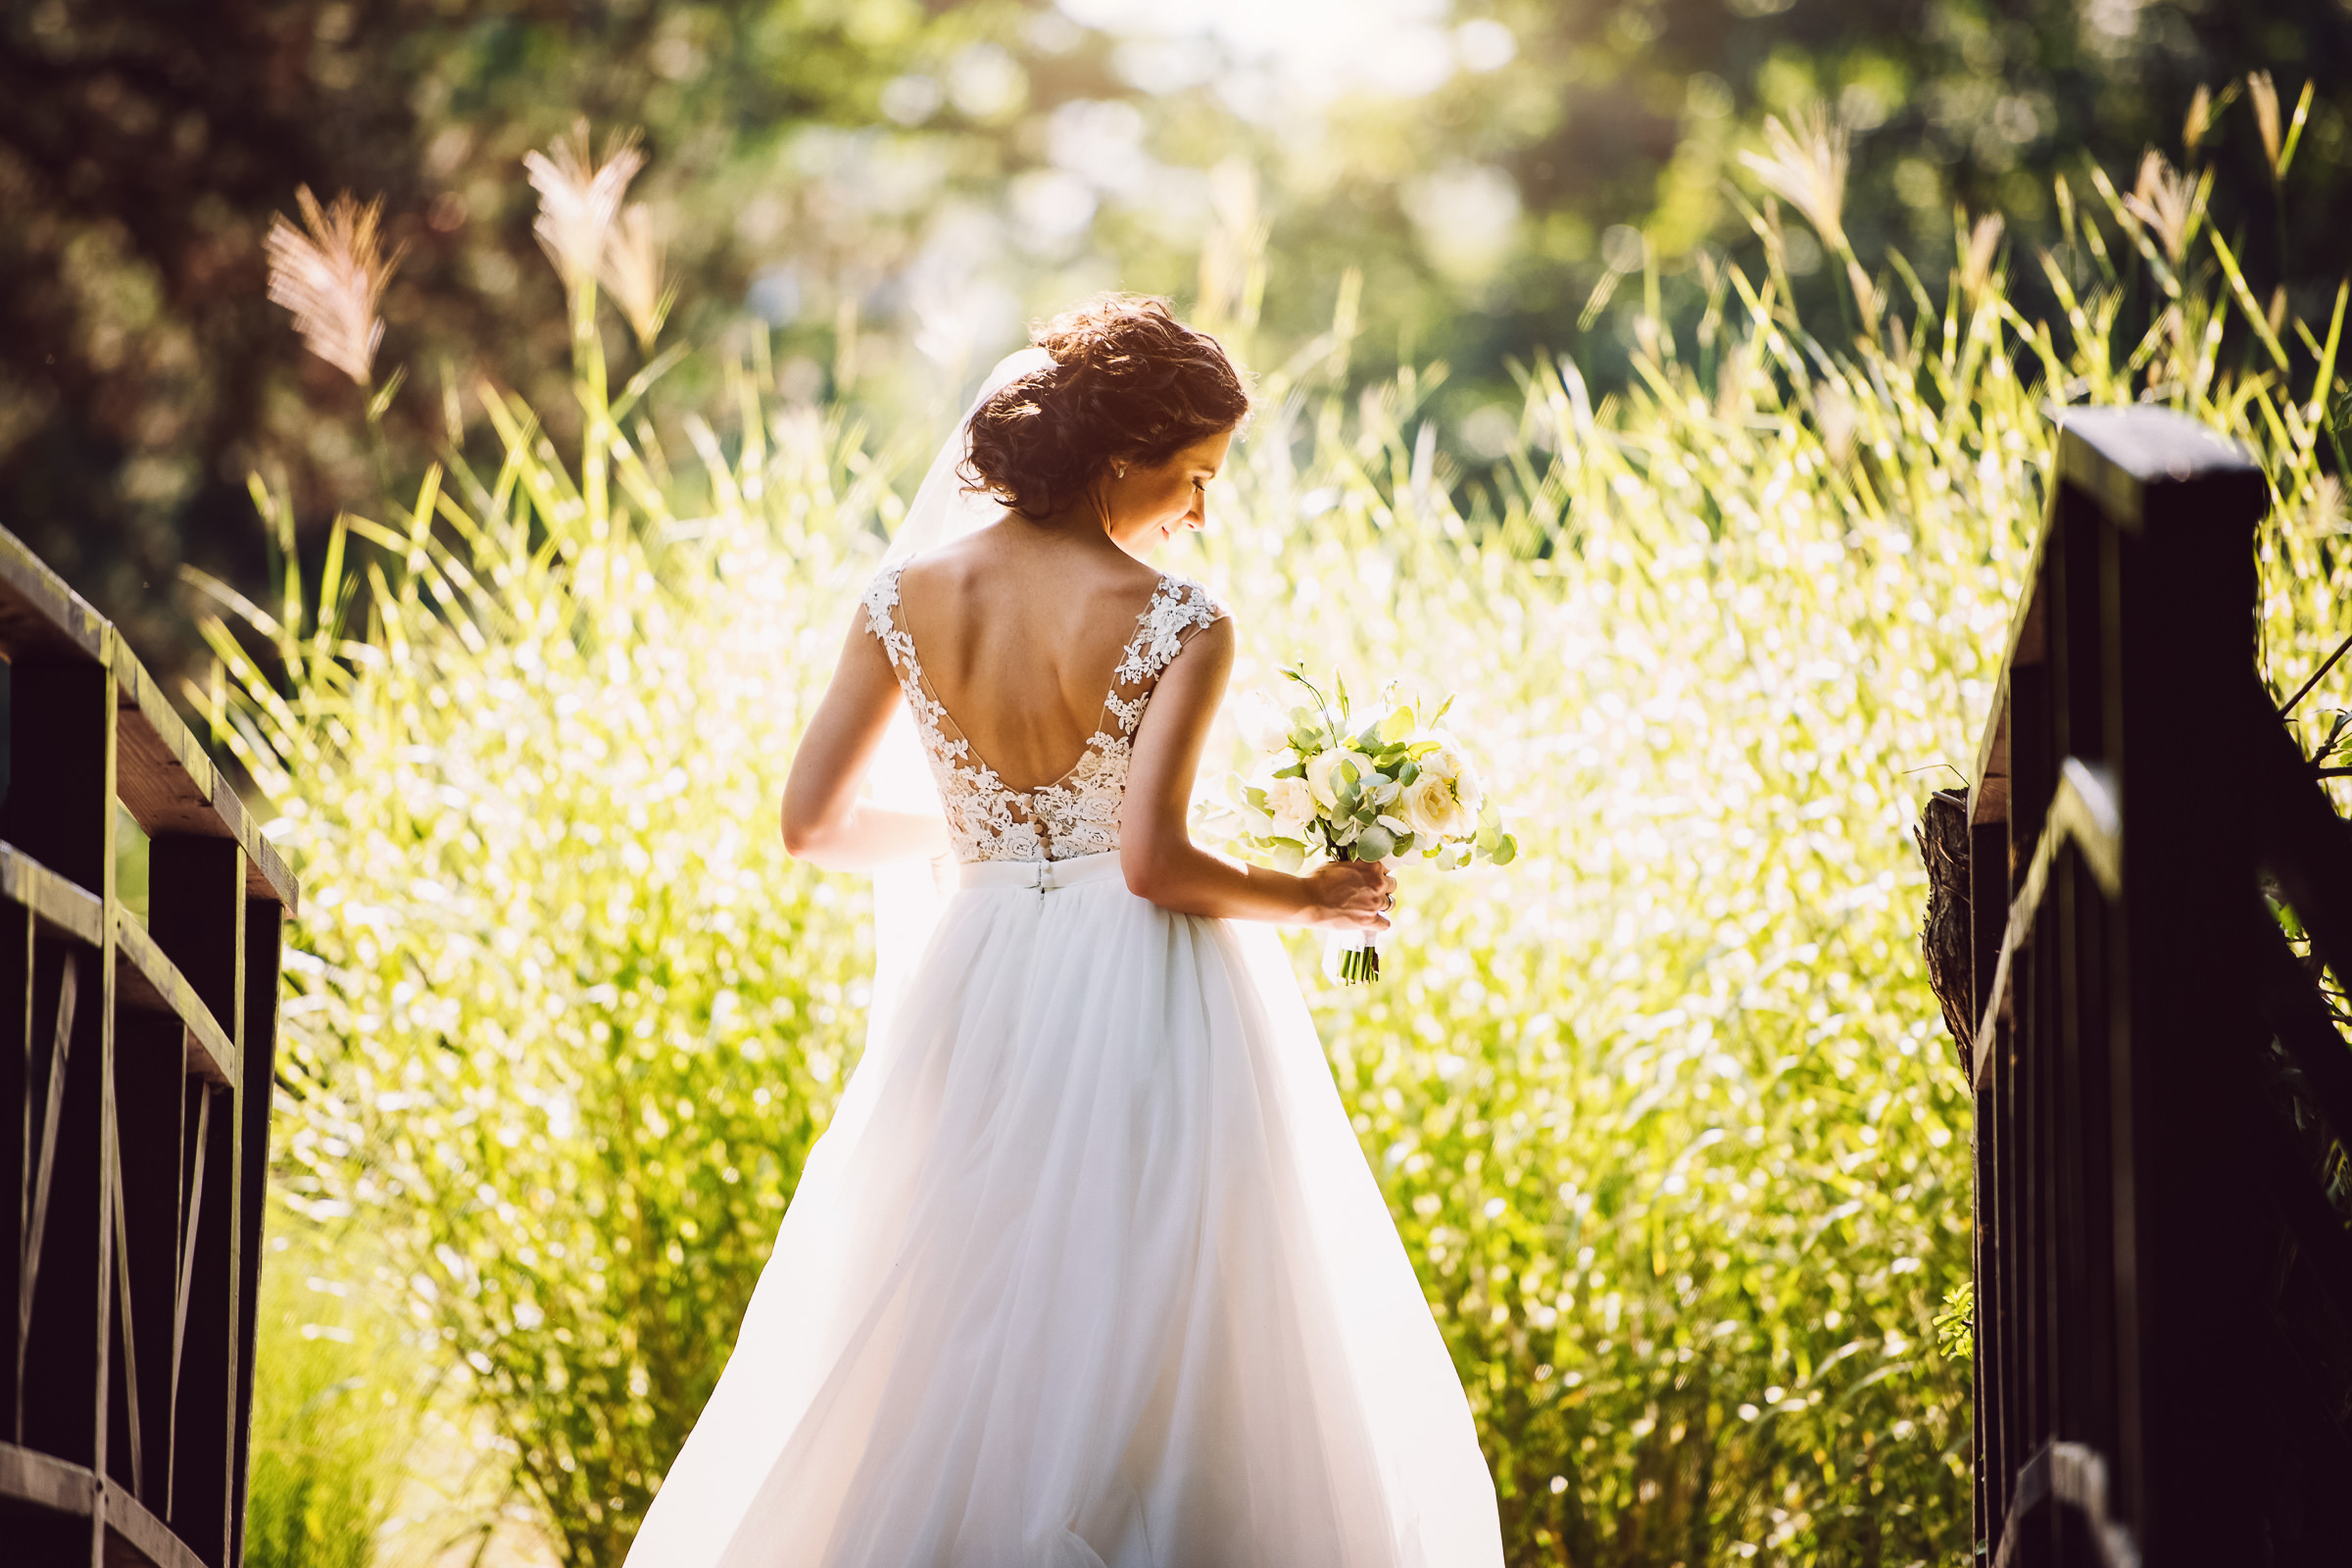 Bride against grasses - photo by Deliysky Studio